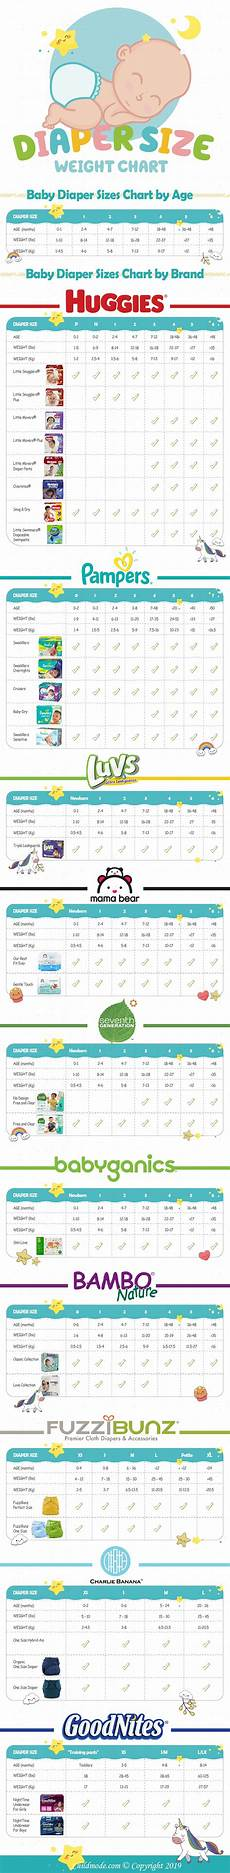 Luvs Size Chart Choosing The Right Diaper For Your Baby Diaper Size